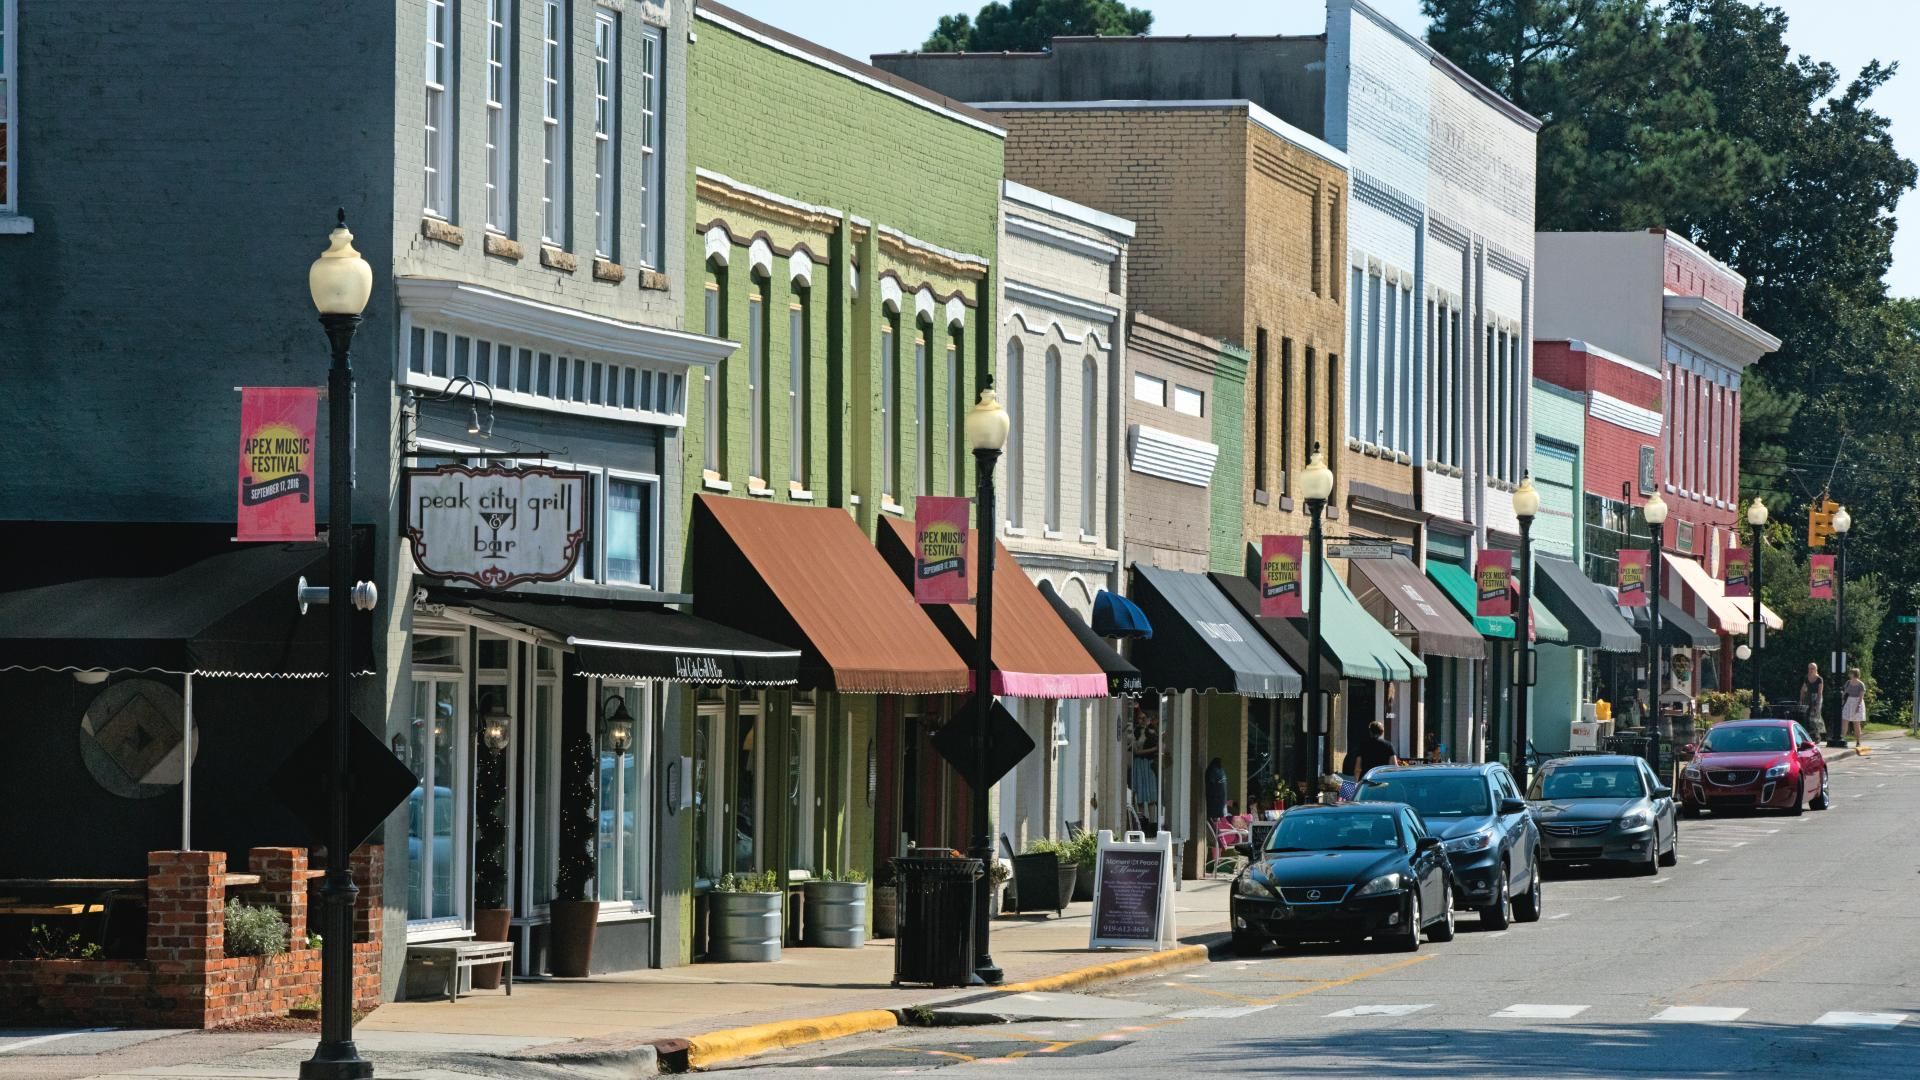 Discover the history and charm of nearby Downtown Apex